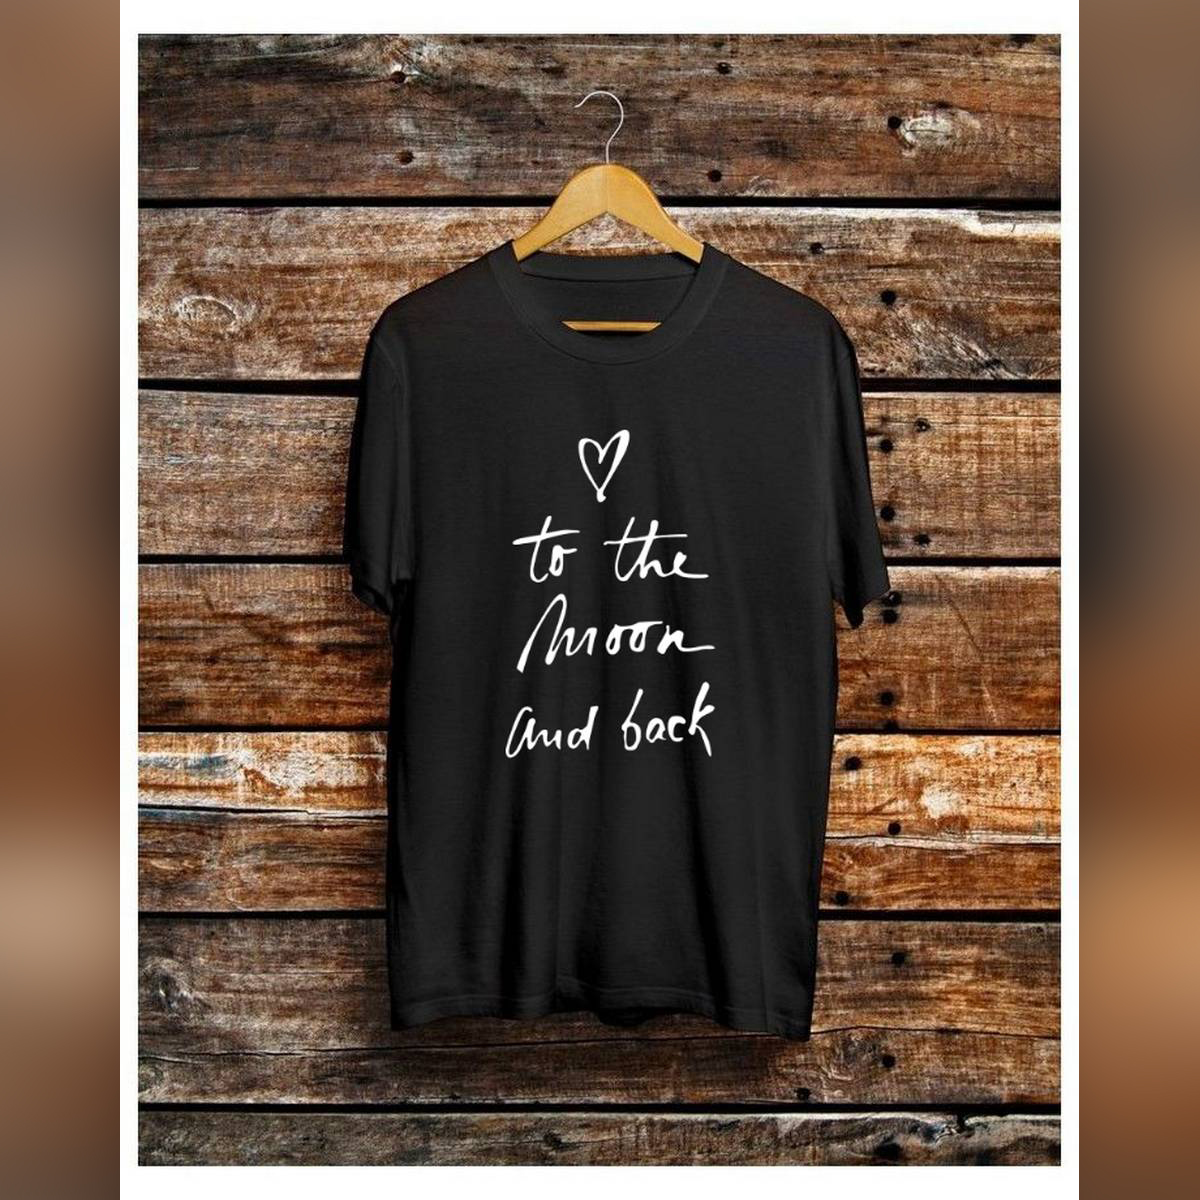 Trendy To The Moon and Back Theme Tag Print Black Colored Summer Top Half Sleeve Tee Shirt Round Neck Cotton Trendy T-shirt Casual Tshirt Spring Wear Smart Fit Half Sleeve Tee Shirt for Women/Girls